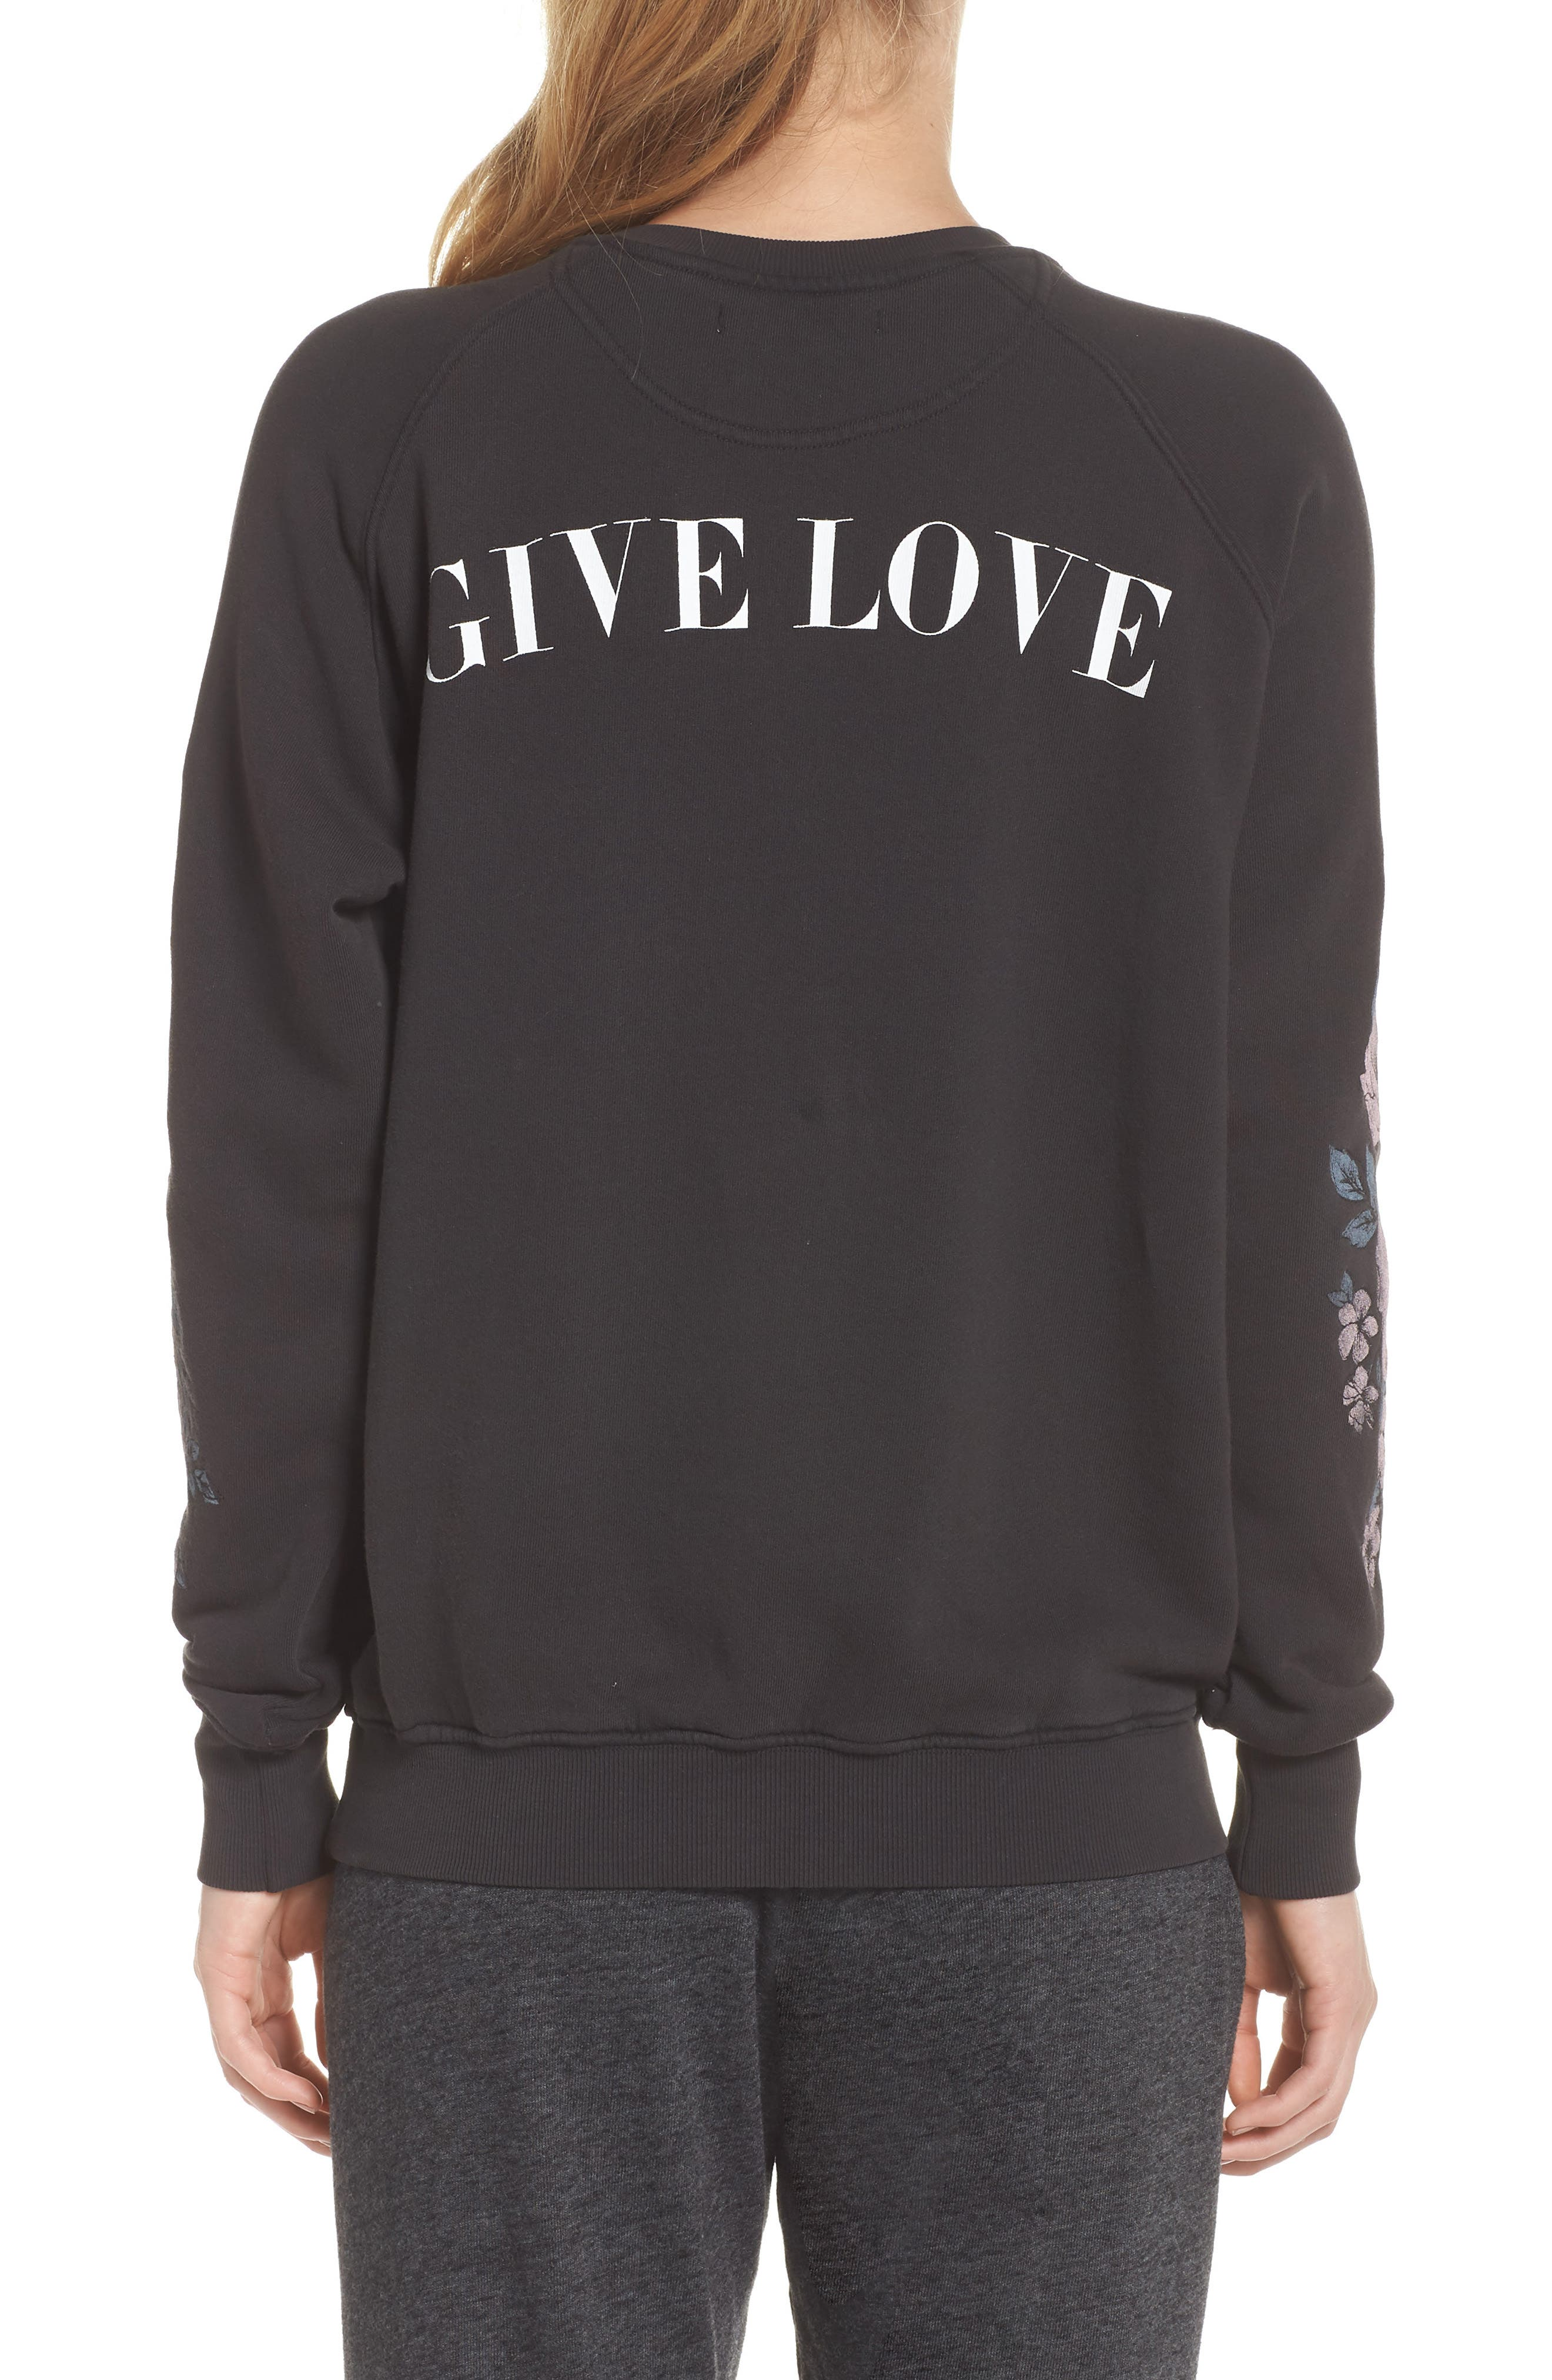 Give Love Sweatshirt,                             Alternate thumbnail 2, color,                             VINTAGE BLACK